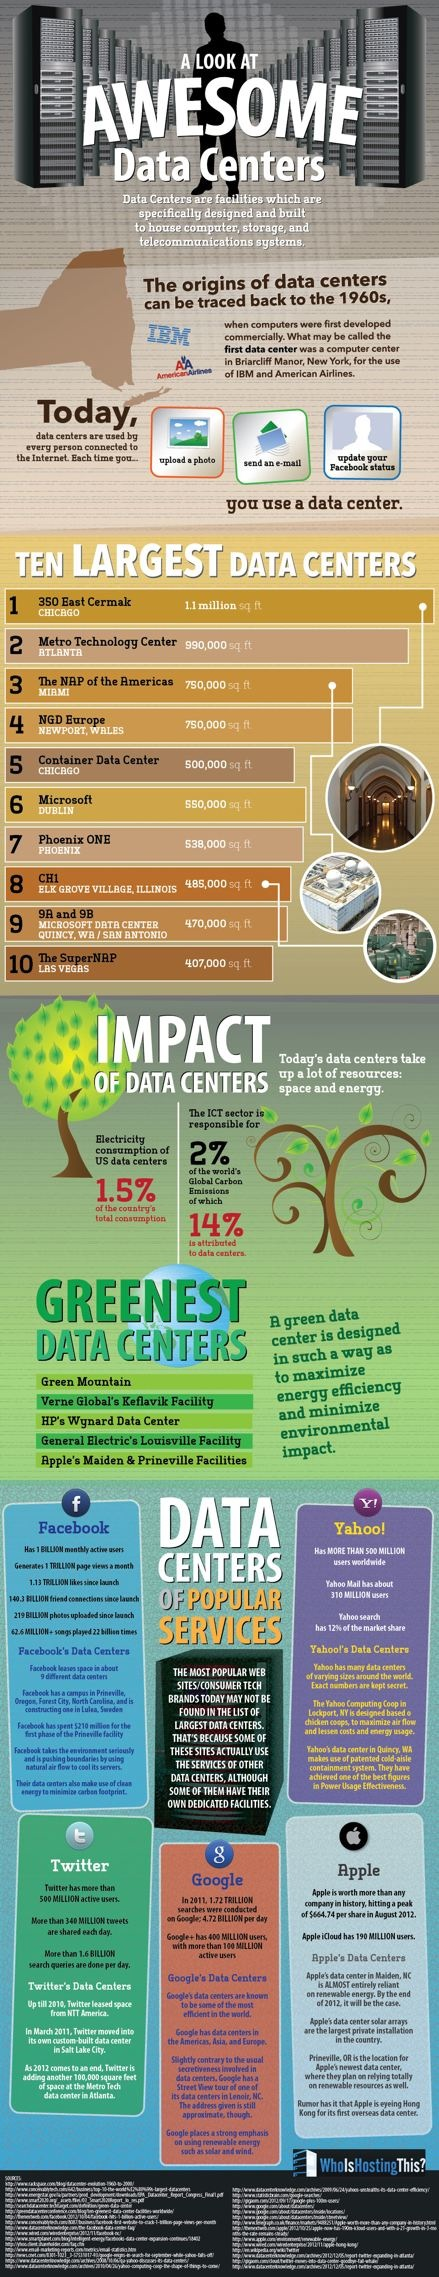 The History and Environmental Impacts of Data Centers